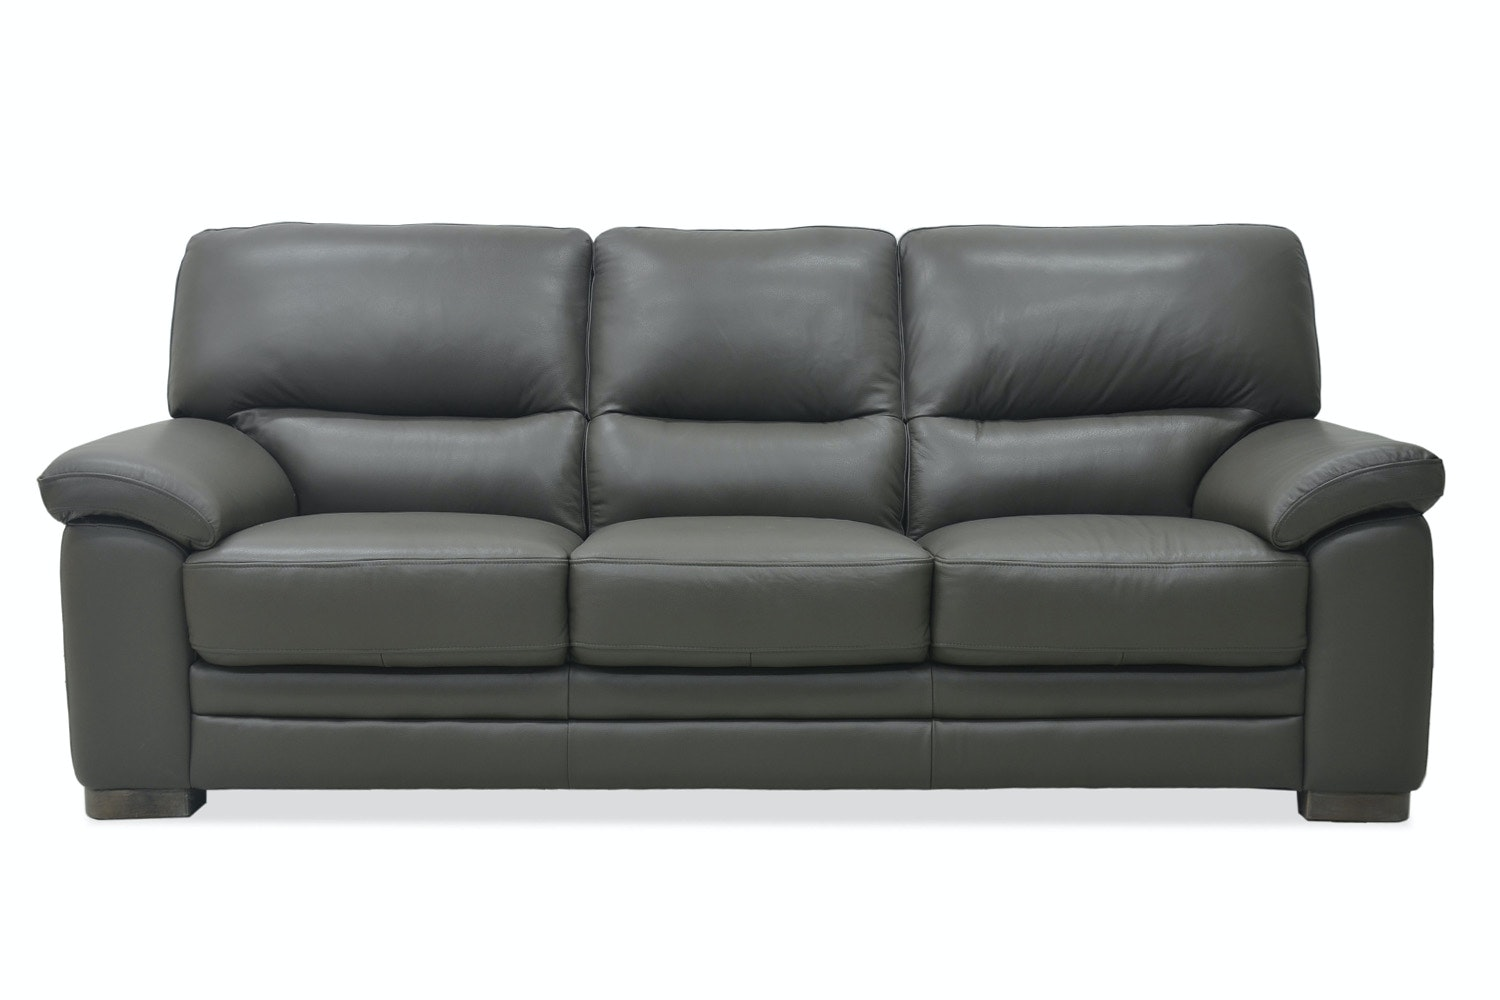 Picture of: Willow 3 Seater Storm Harvey Norman Ireland